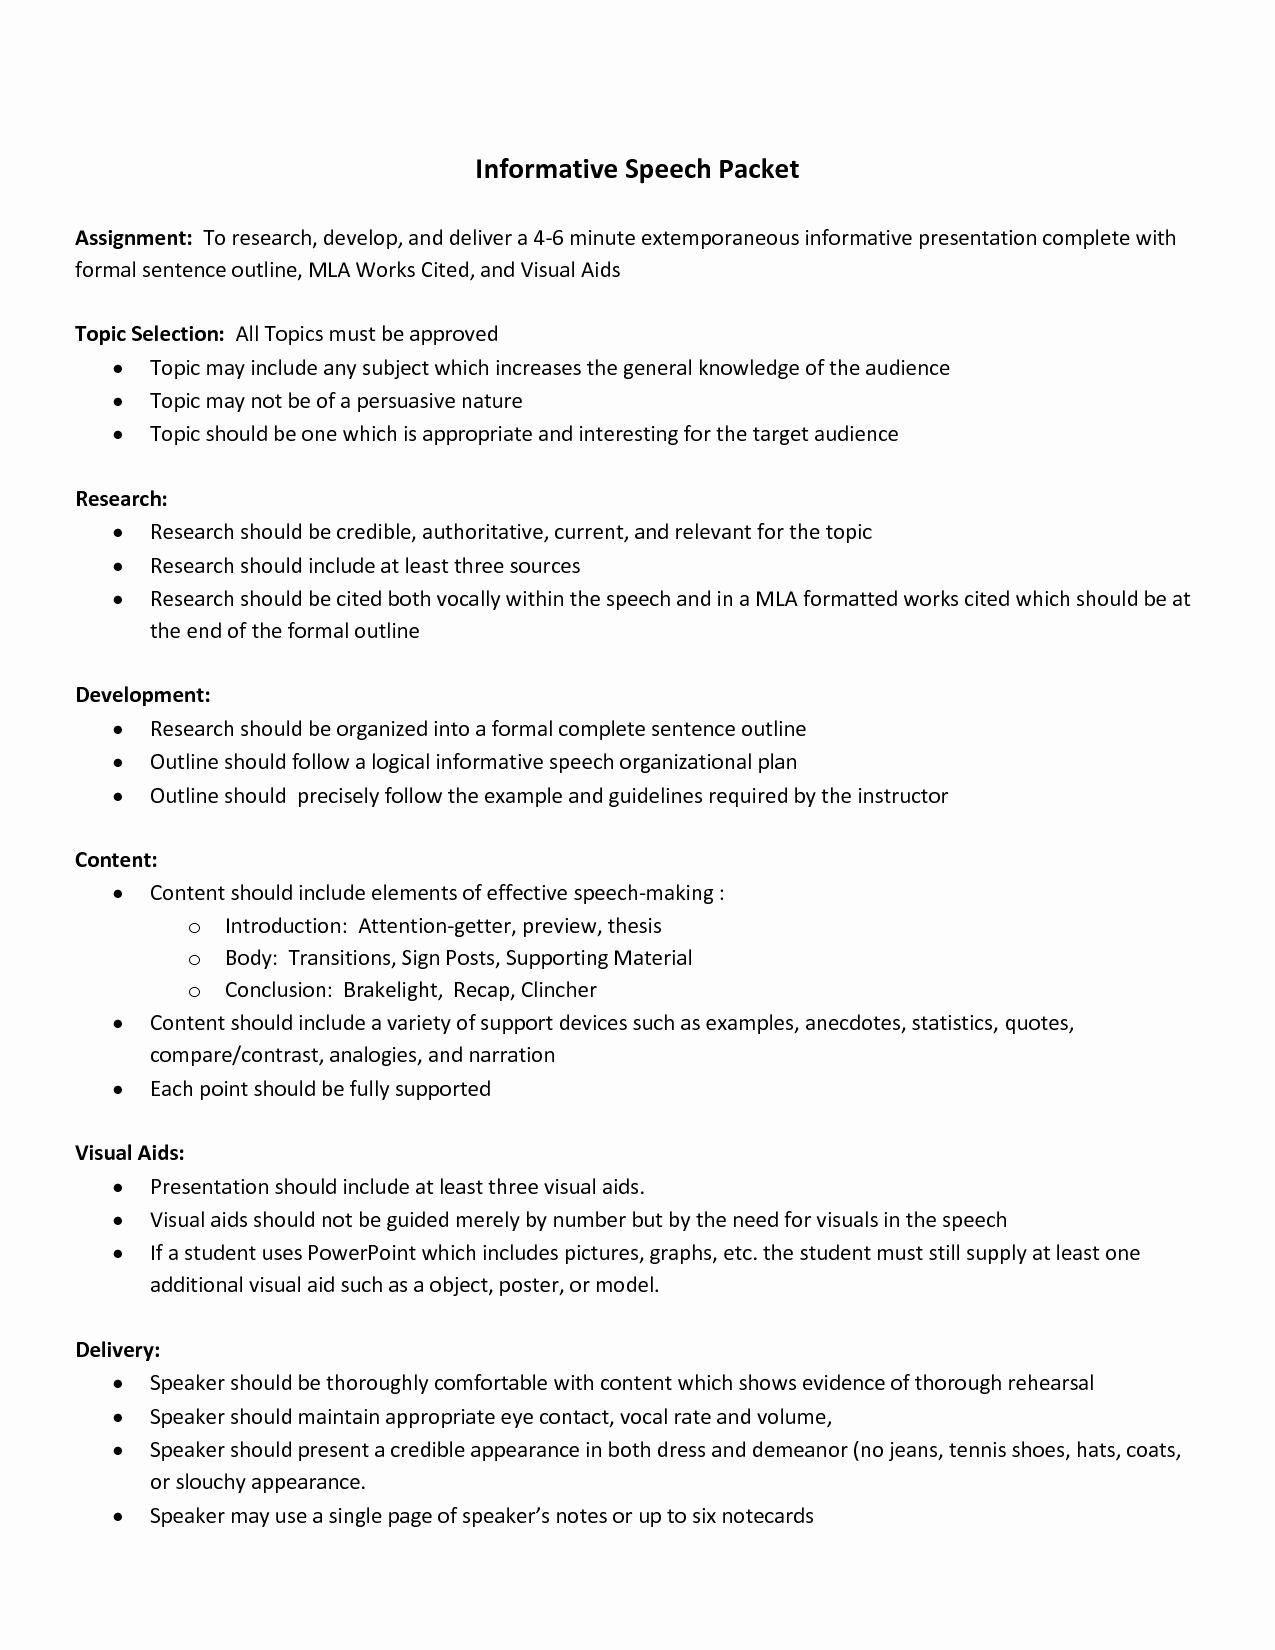 Mla format Outline for Speech Lovely Best S Of Informative Speech In Mla format